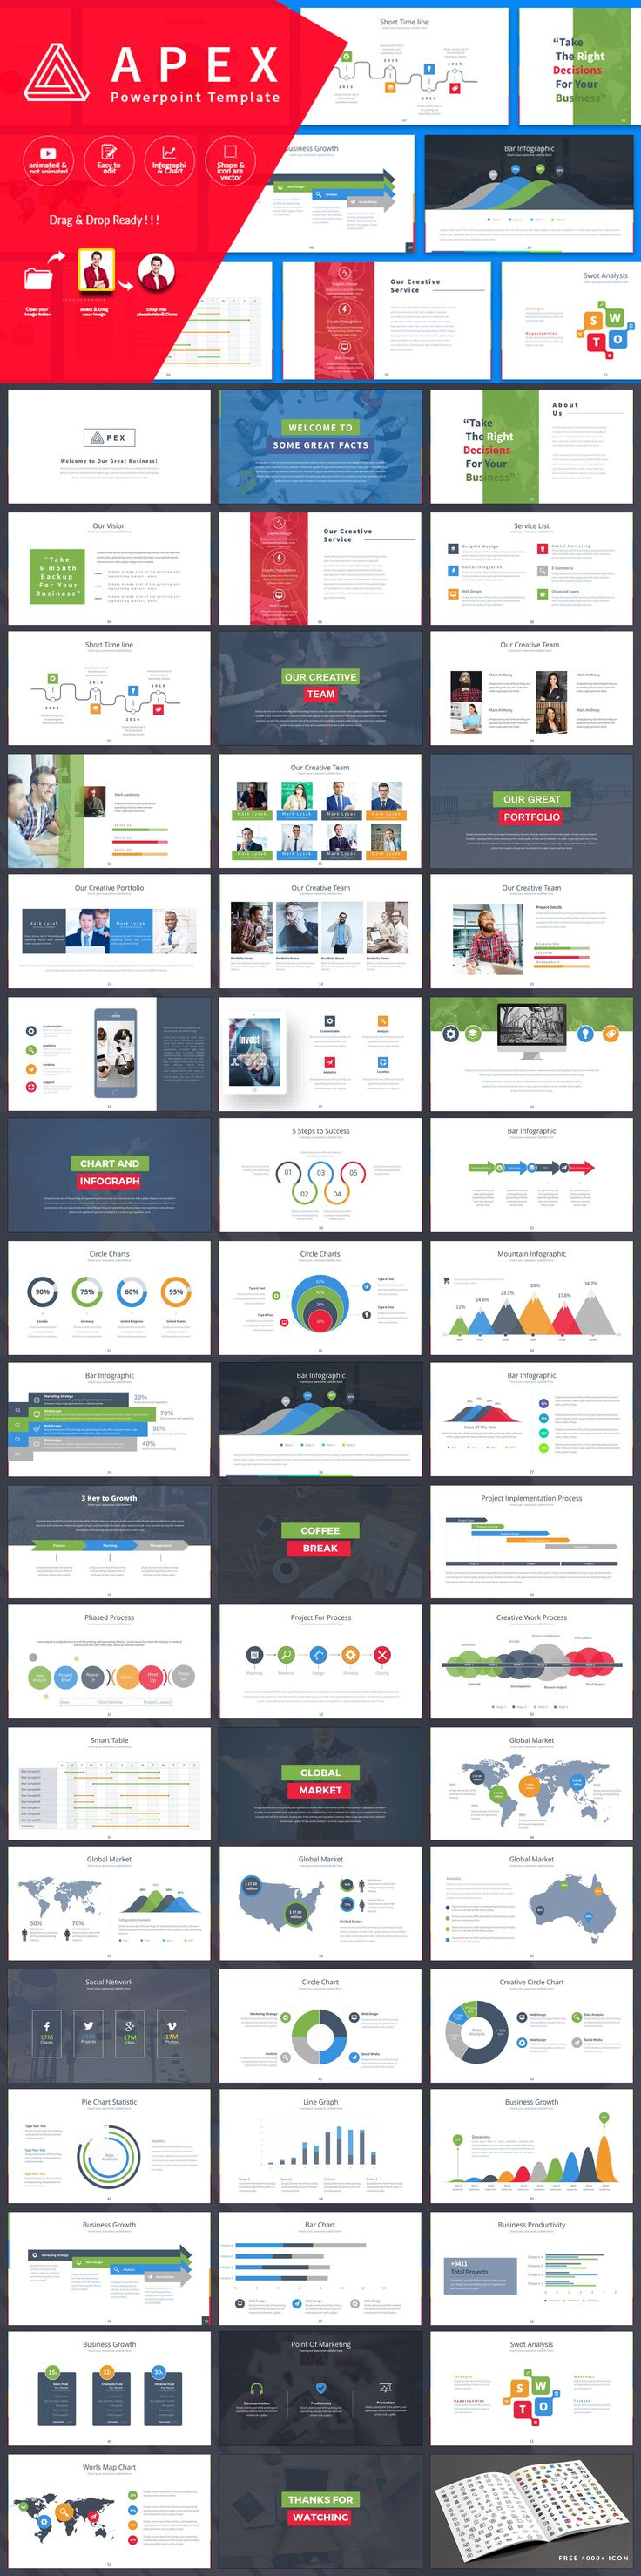 Apex - PowerPoint Presentation Template